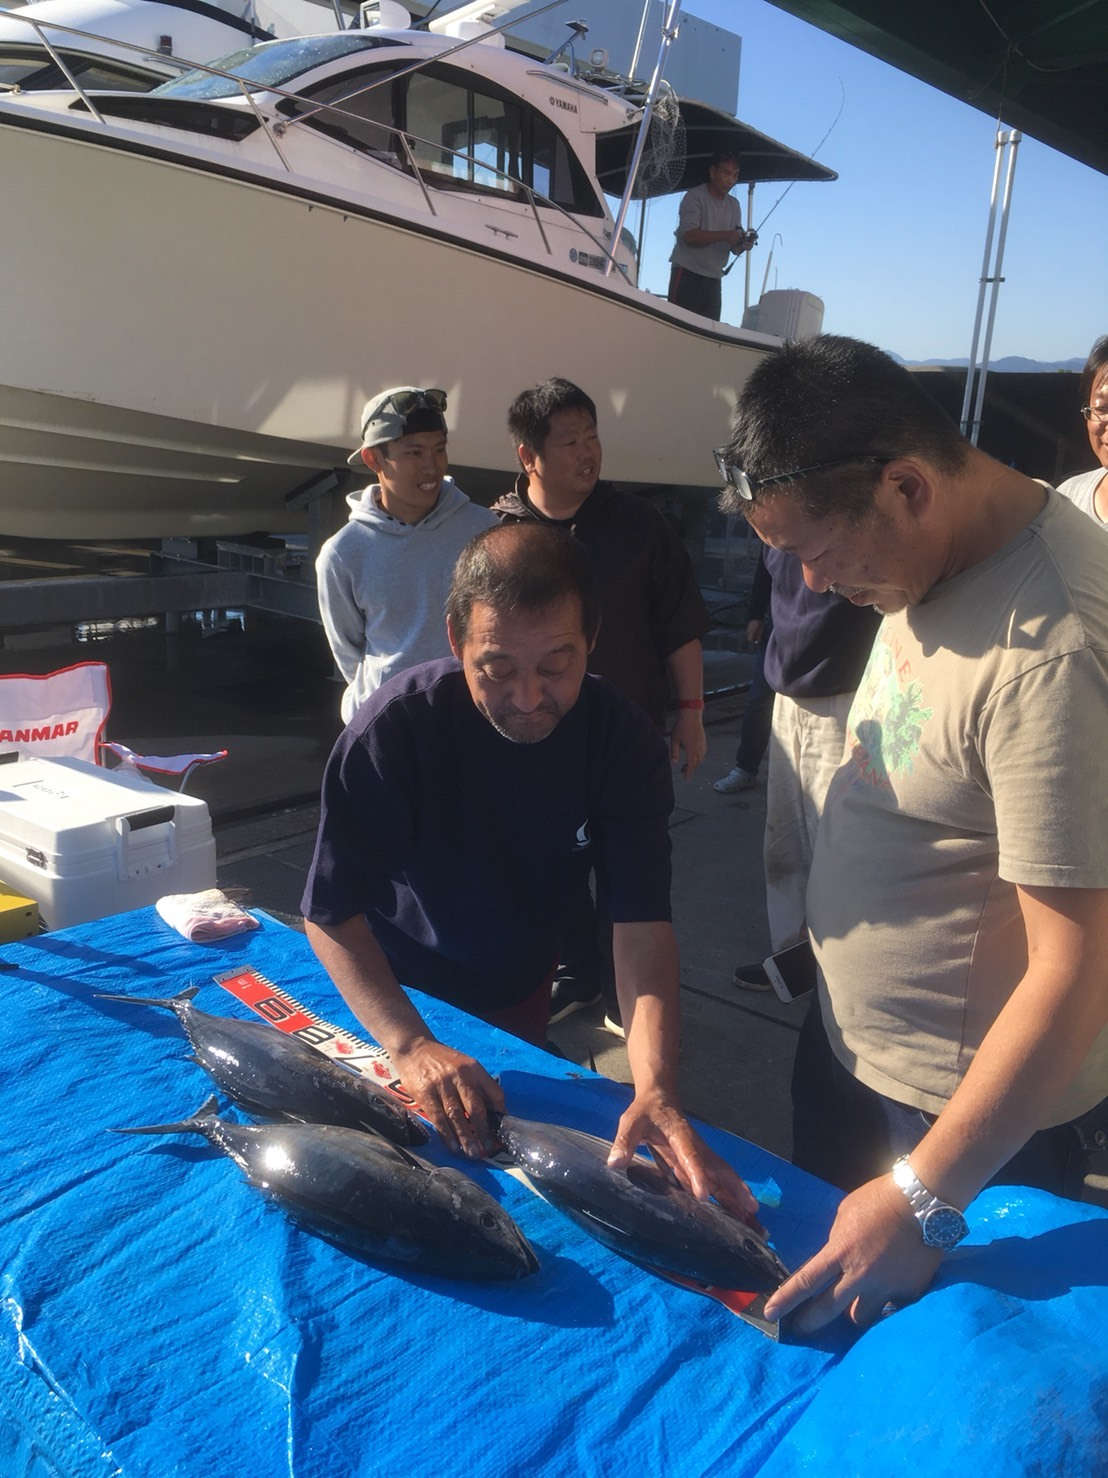 BOAY GAME FISHING in 高知 太平洋マリンcup 2018 レポート!_a0132631_15471558.jpg